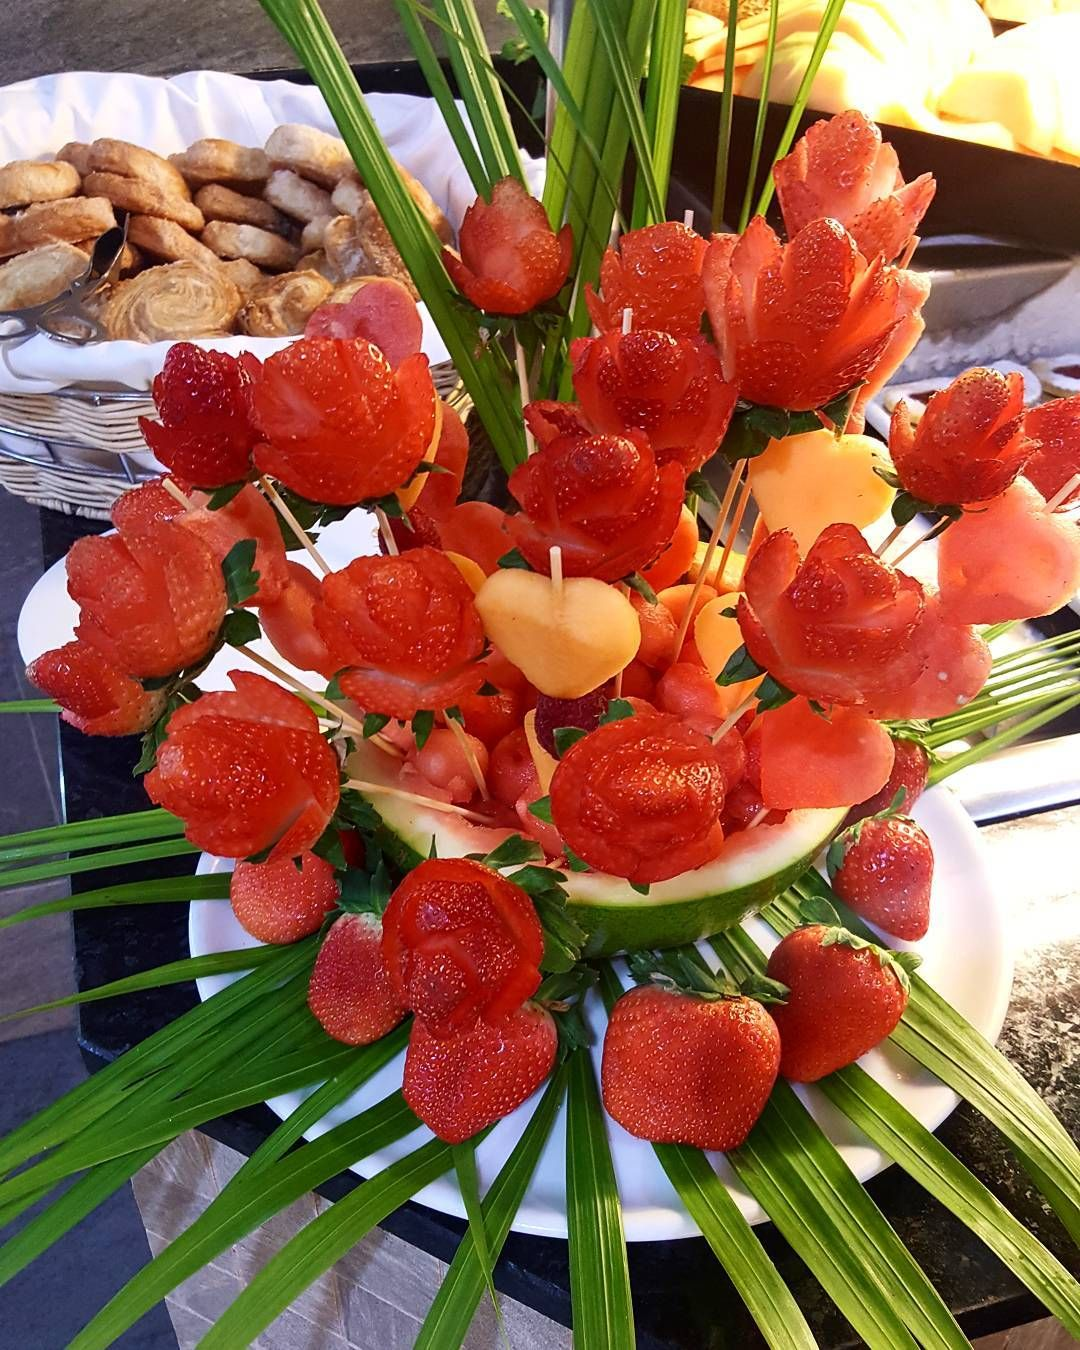 Fruit art at Riu Palace St martin - Strawberry flowers for Valentine's day